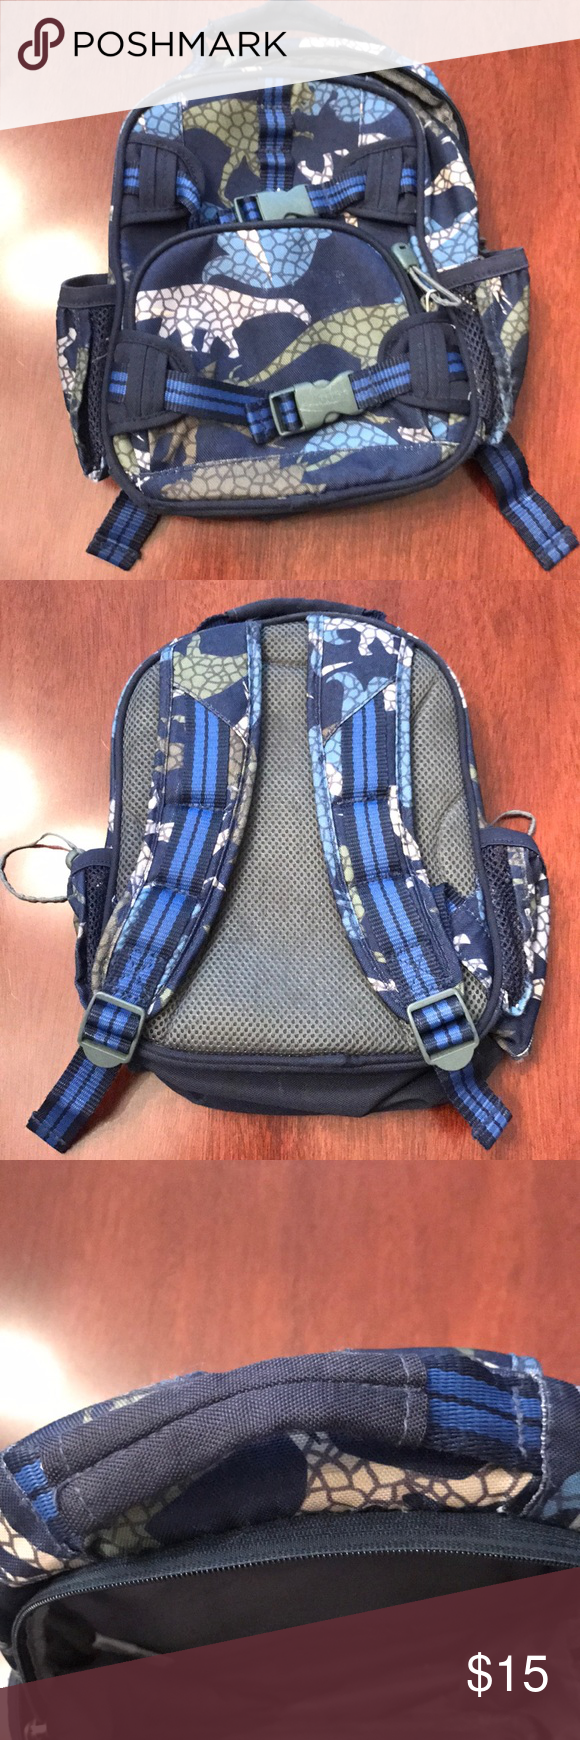 Pottery Barn Kids Dinosaur Backpack Amp Lunch Kit With